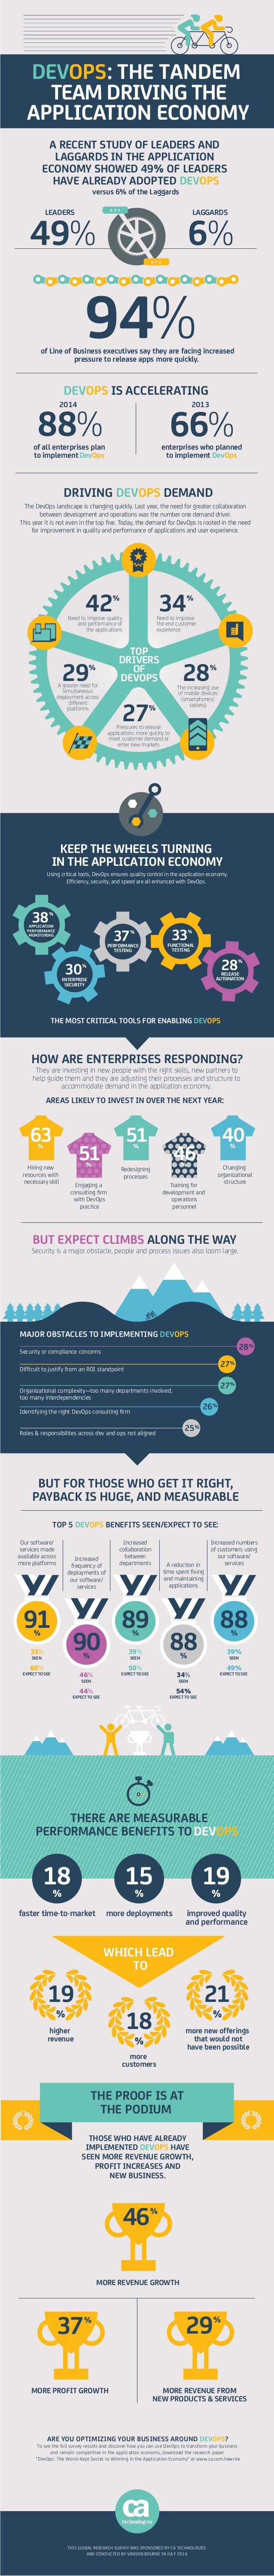 [Infographic] DevOps: The Tandem Team Driving the Application Economy